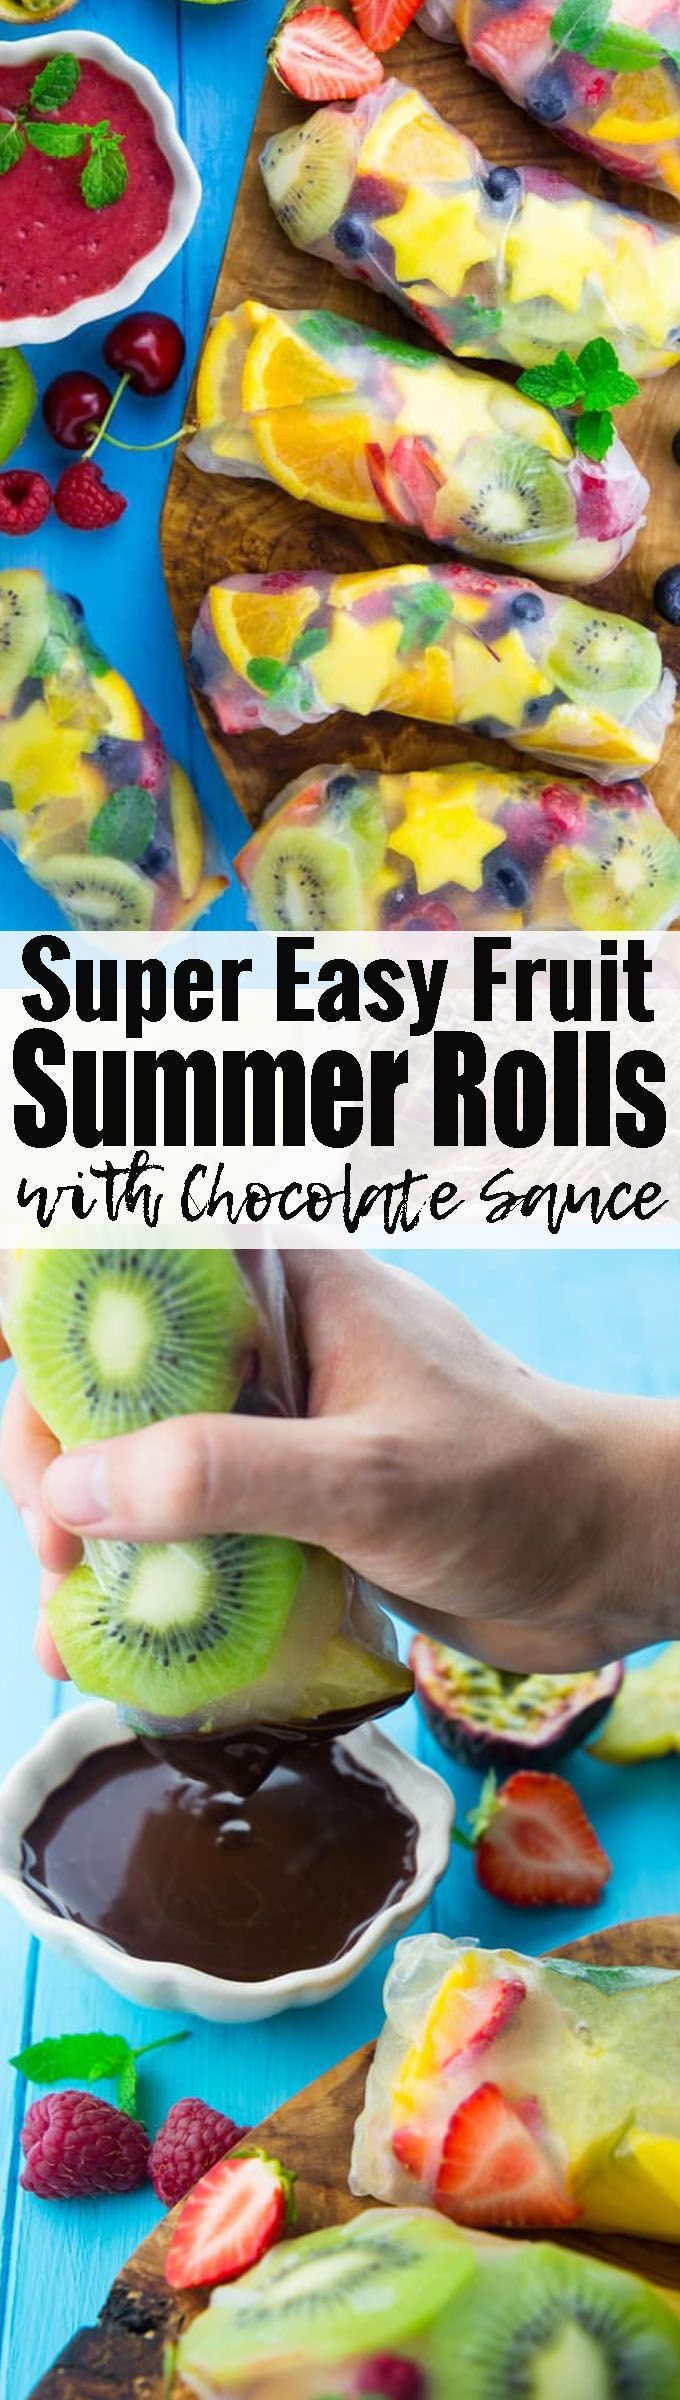 If you're looking for healthy desserts, these fruit summer rolls with chocolate sauce might be perfect for you! Find more vegan desserts and vegan recipes in general at veganheaven.org!